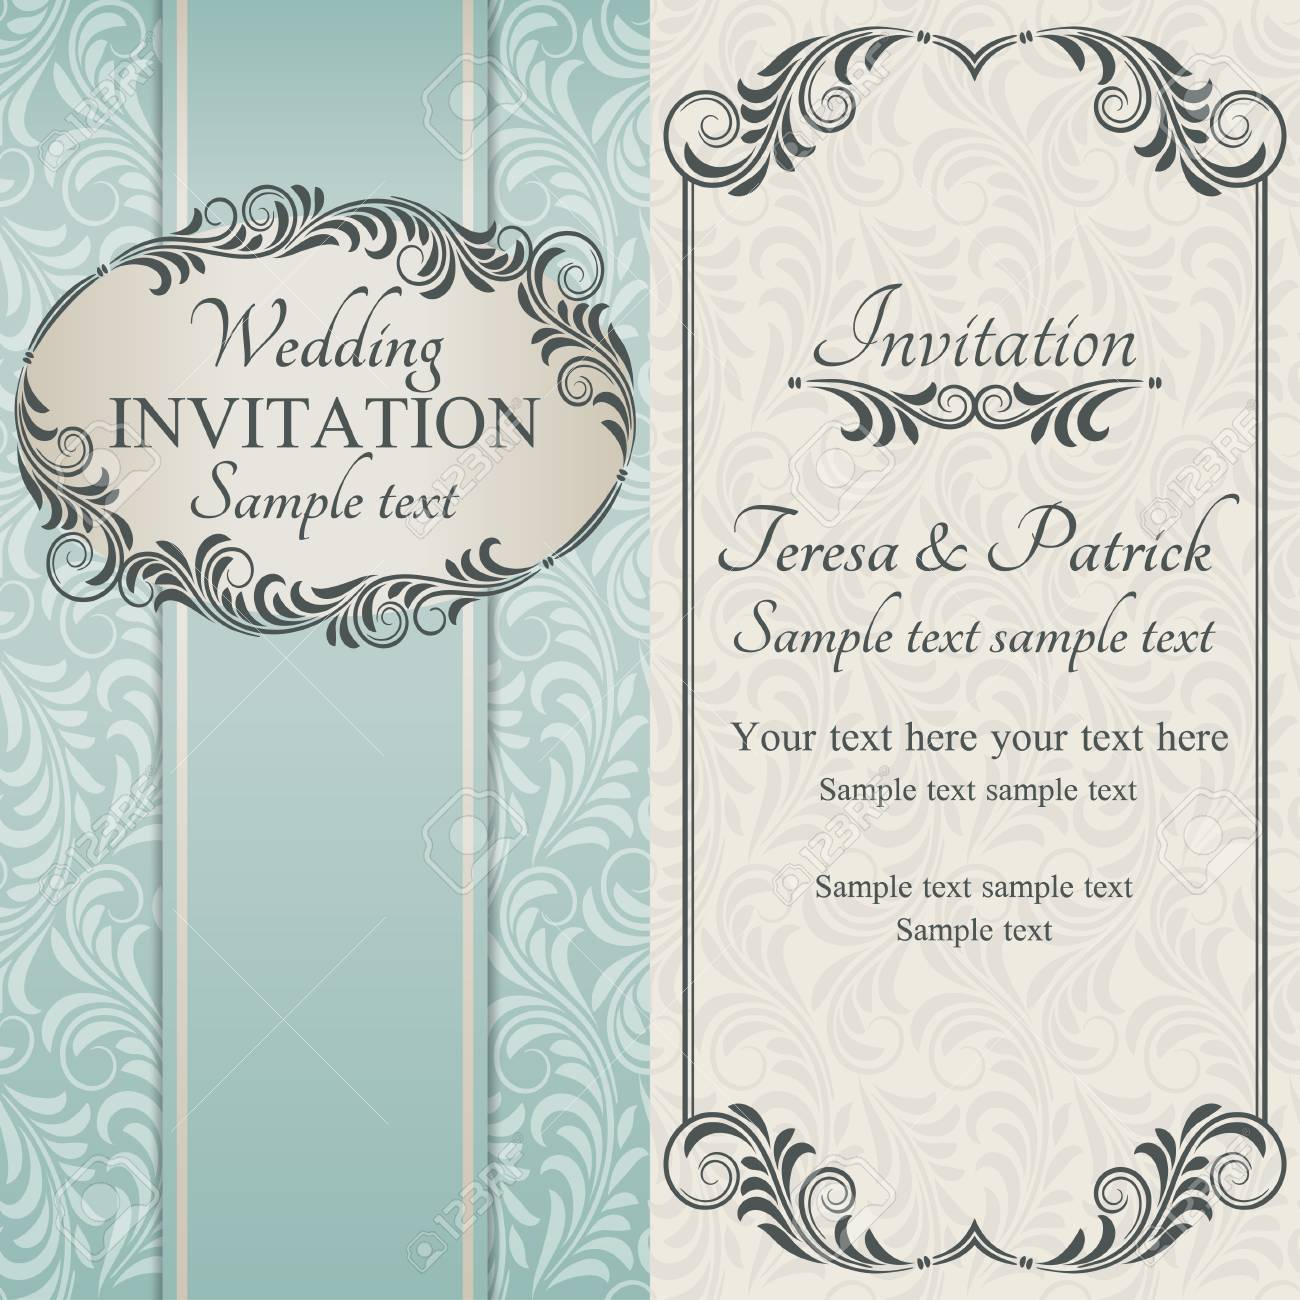 Antique Baroque Wedding Invitation Brown On Beige And Blue